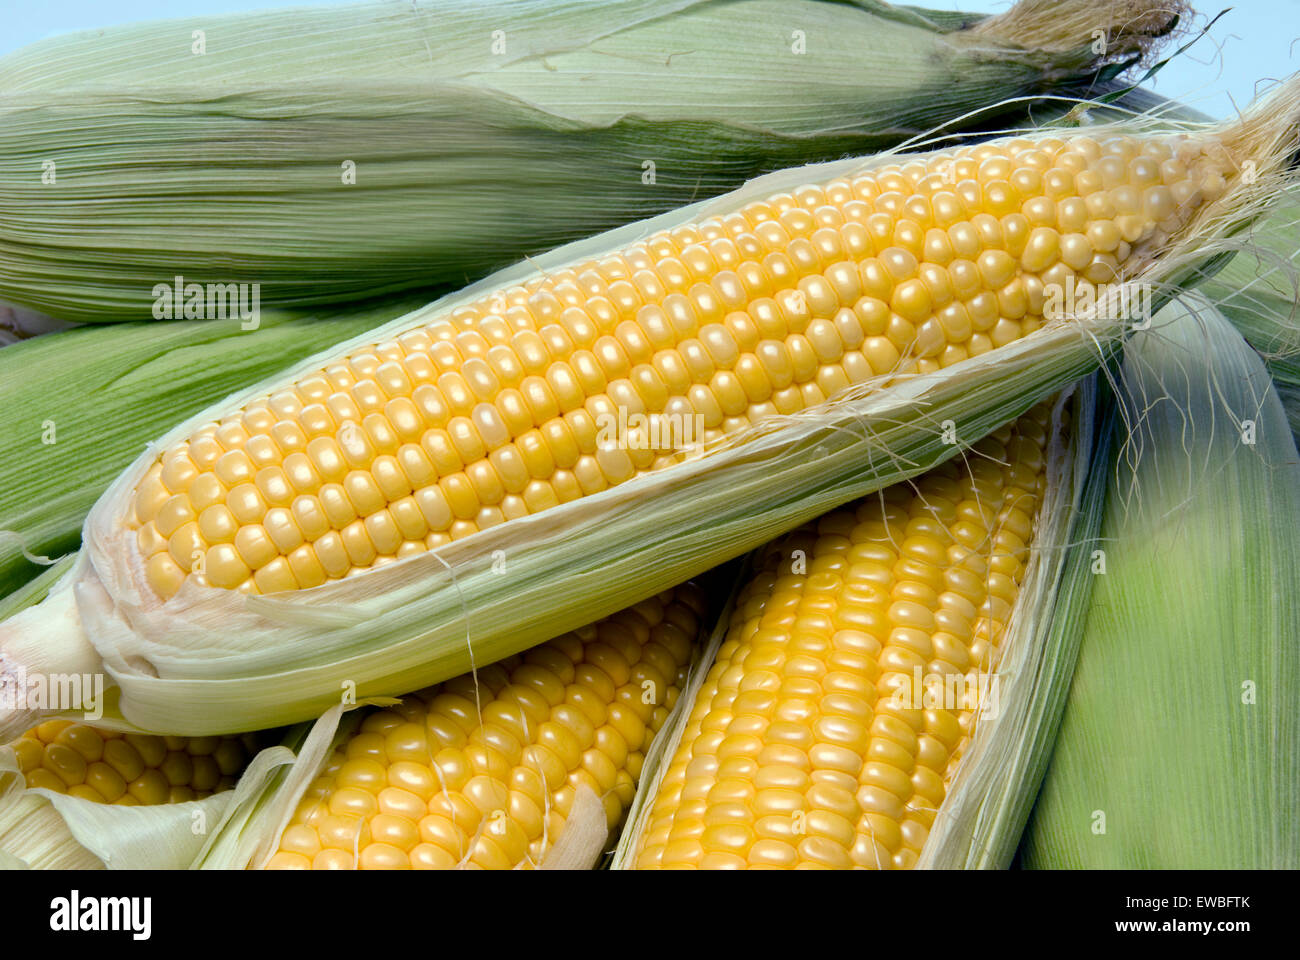 Close up of beautiful yellow summer corn on the cob fresh picked off the farm. - Stock Image